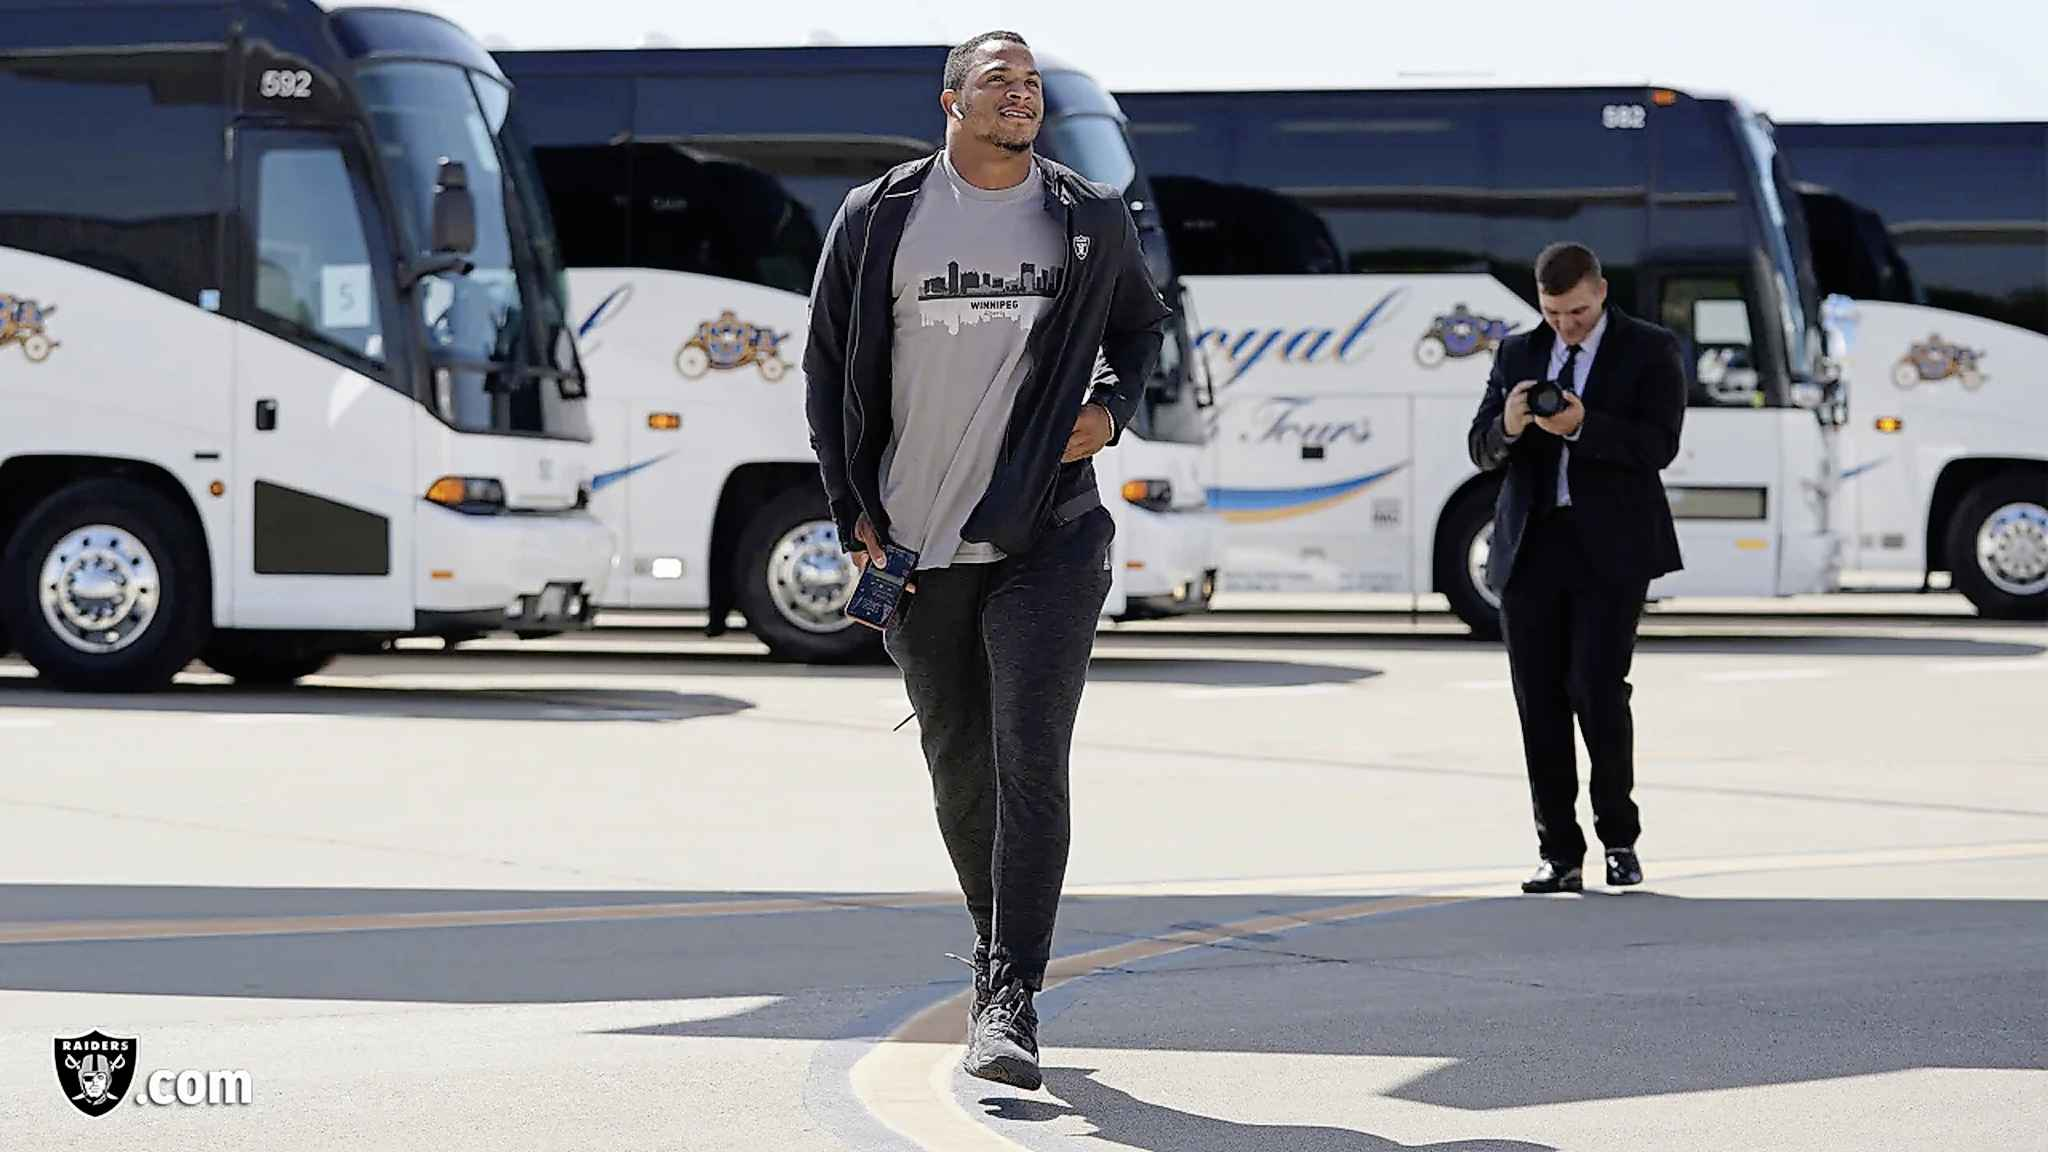 Raiders safety Johnathan Abram (24) departs for their game in Winnipeg against the Green Bay Packers . (Matt Aguirre / Oakland Raiders)